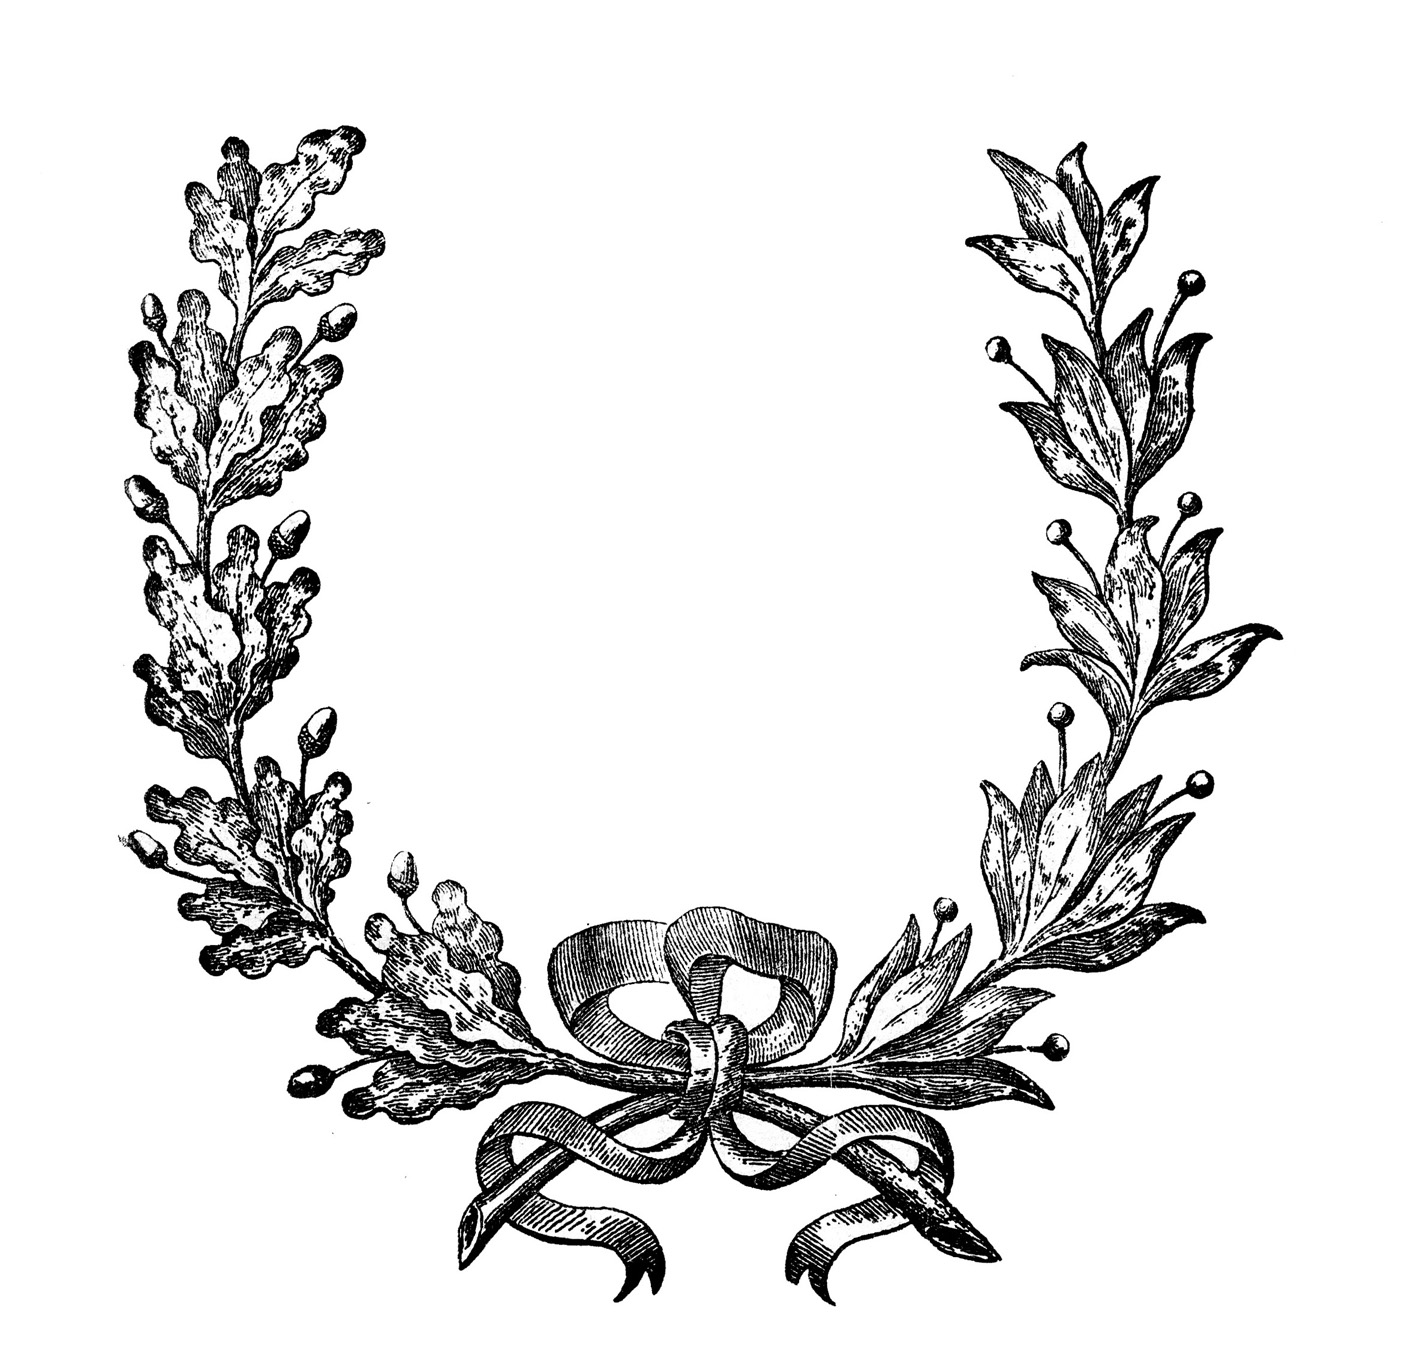 Download Vintage French Wreath Engraving The Graphics Fairy.